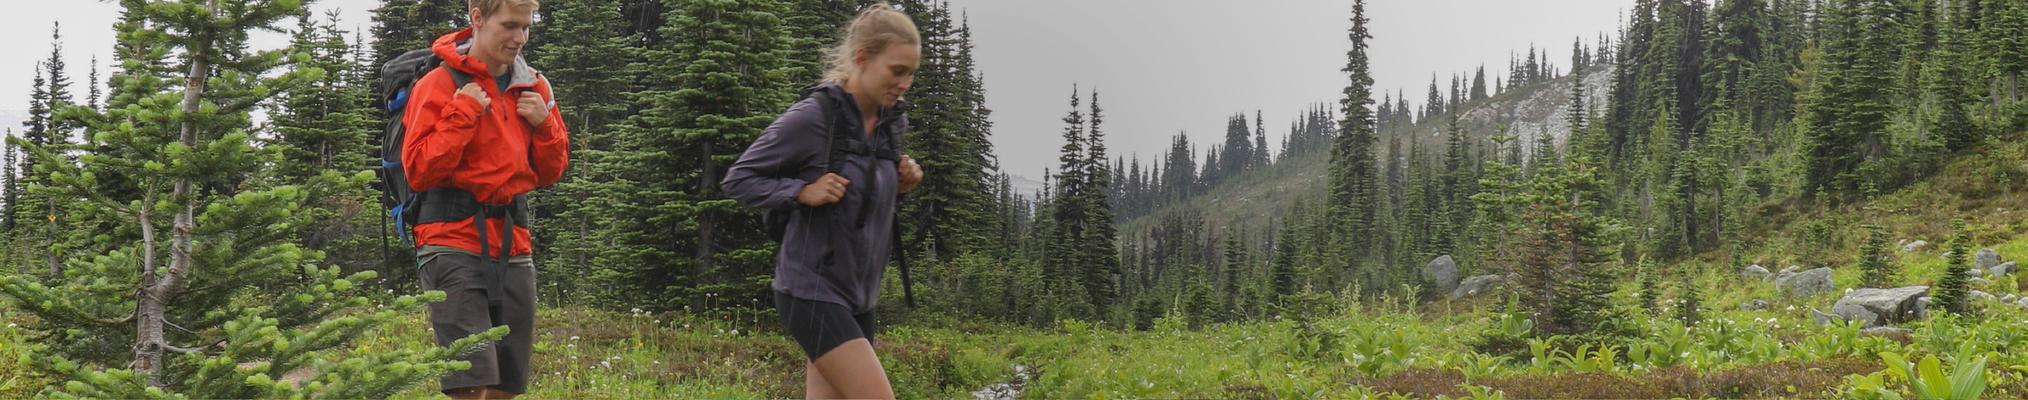 couple hiking through forest: protecting environments, protecting our natural world